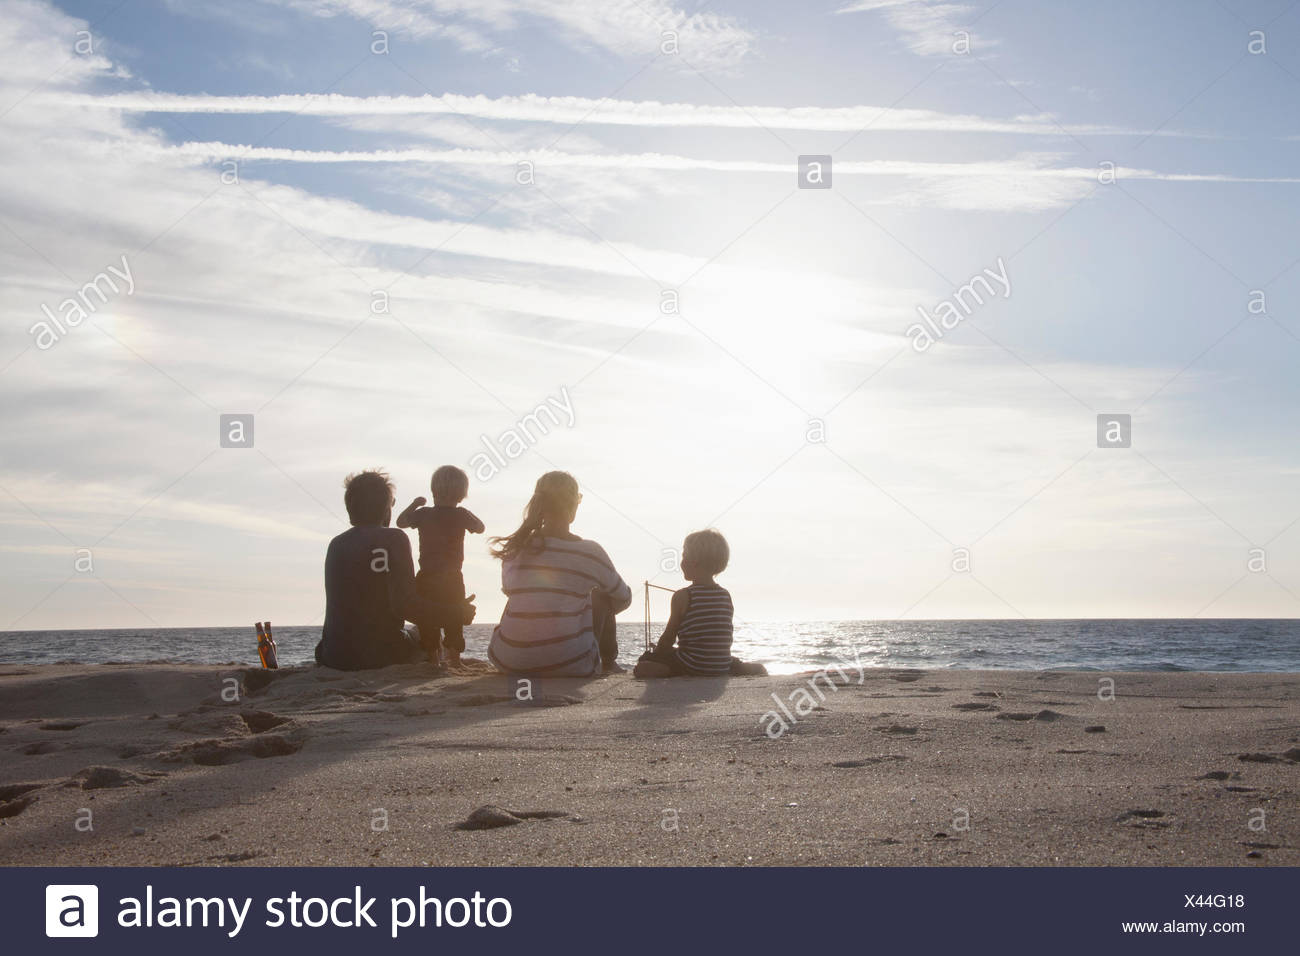 Back view of familiy with two kids sitting on the beach at twilight - Stock Image